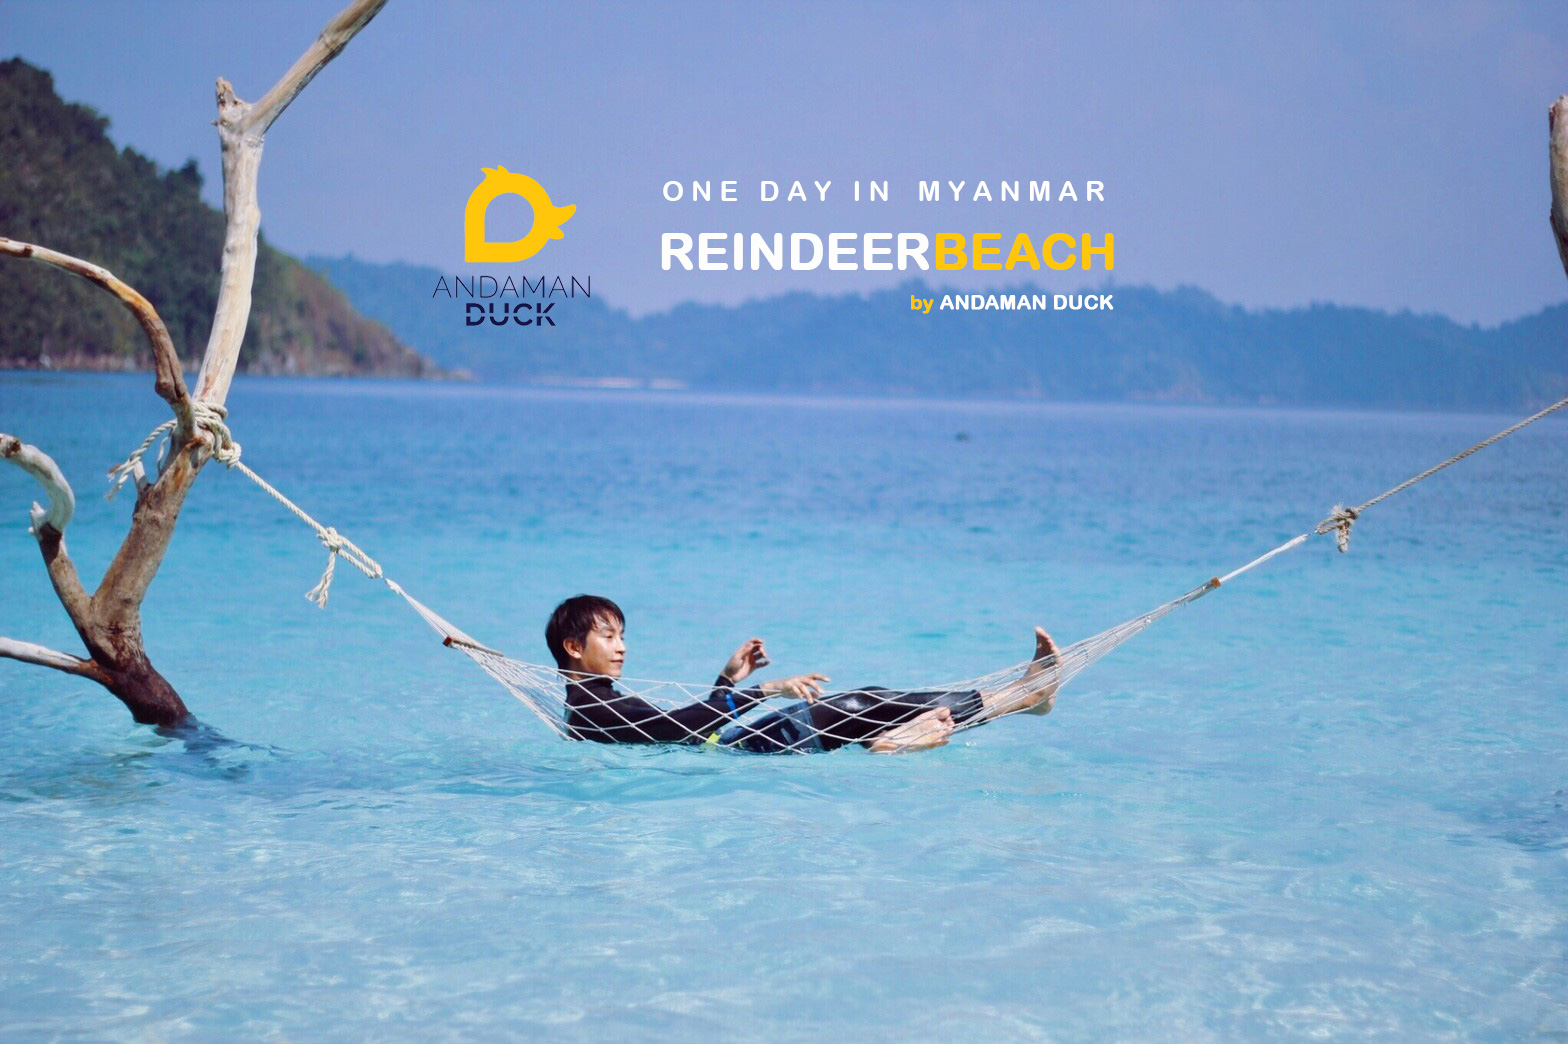 One Day in Reindeer Beach Myanmar with Andaman Duck